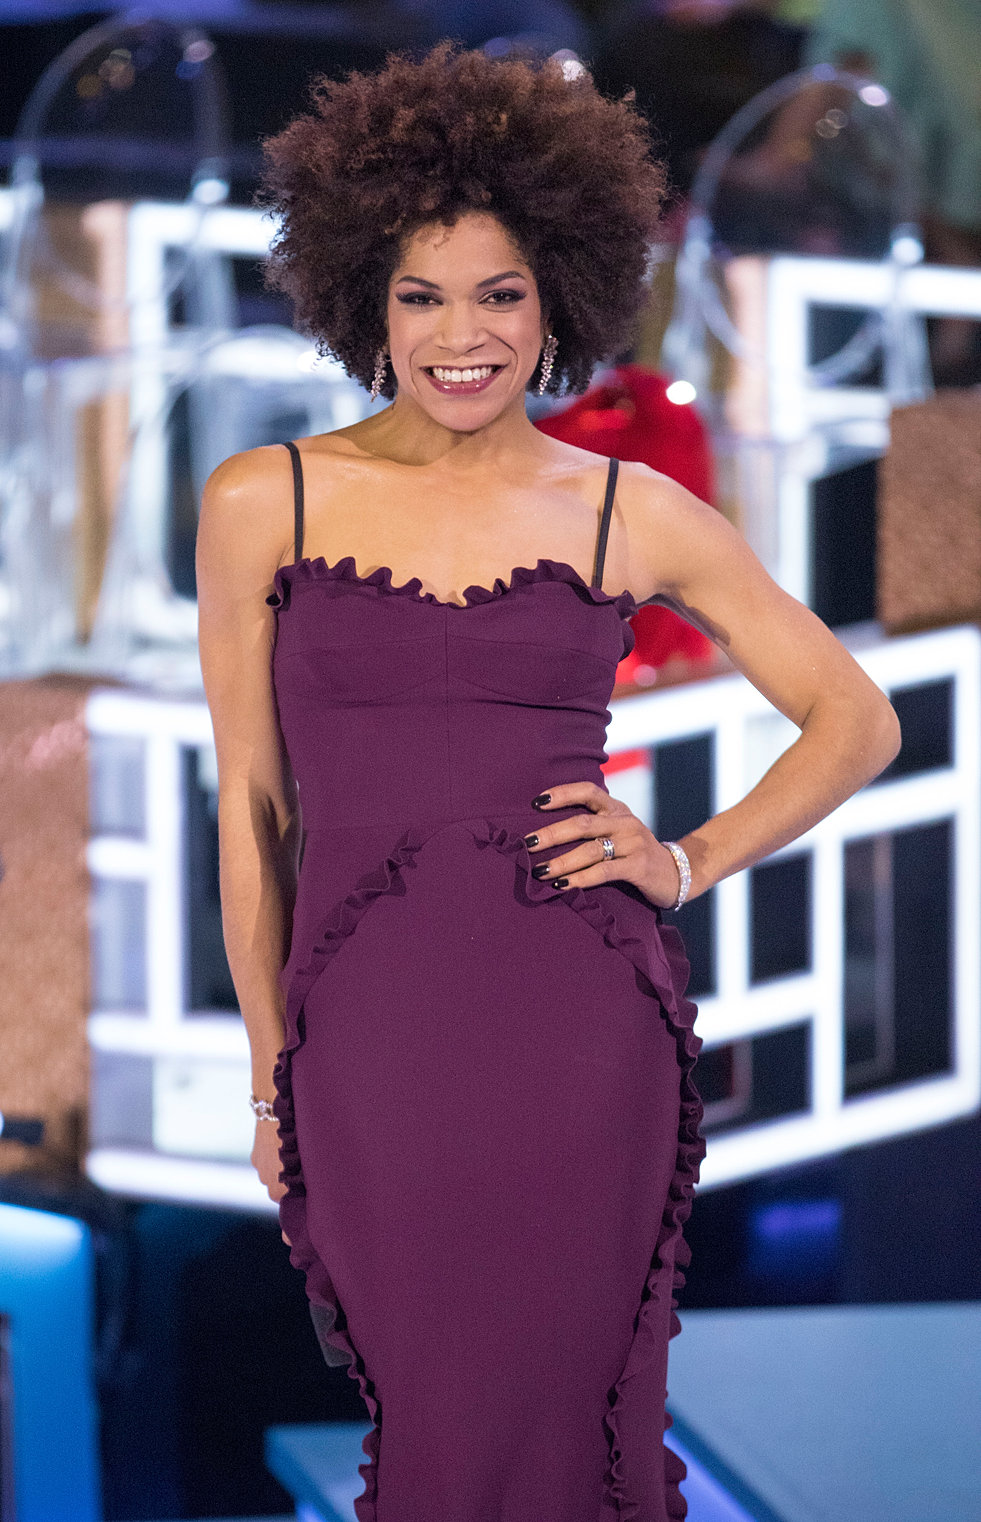 big brother canada photos s1 s2 s3 s4 s5